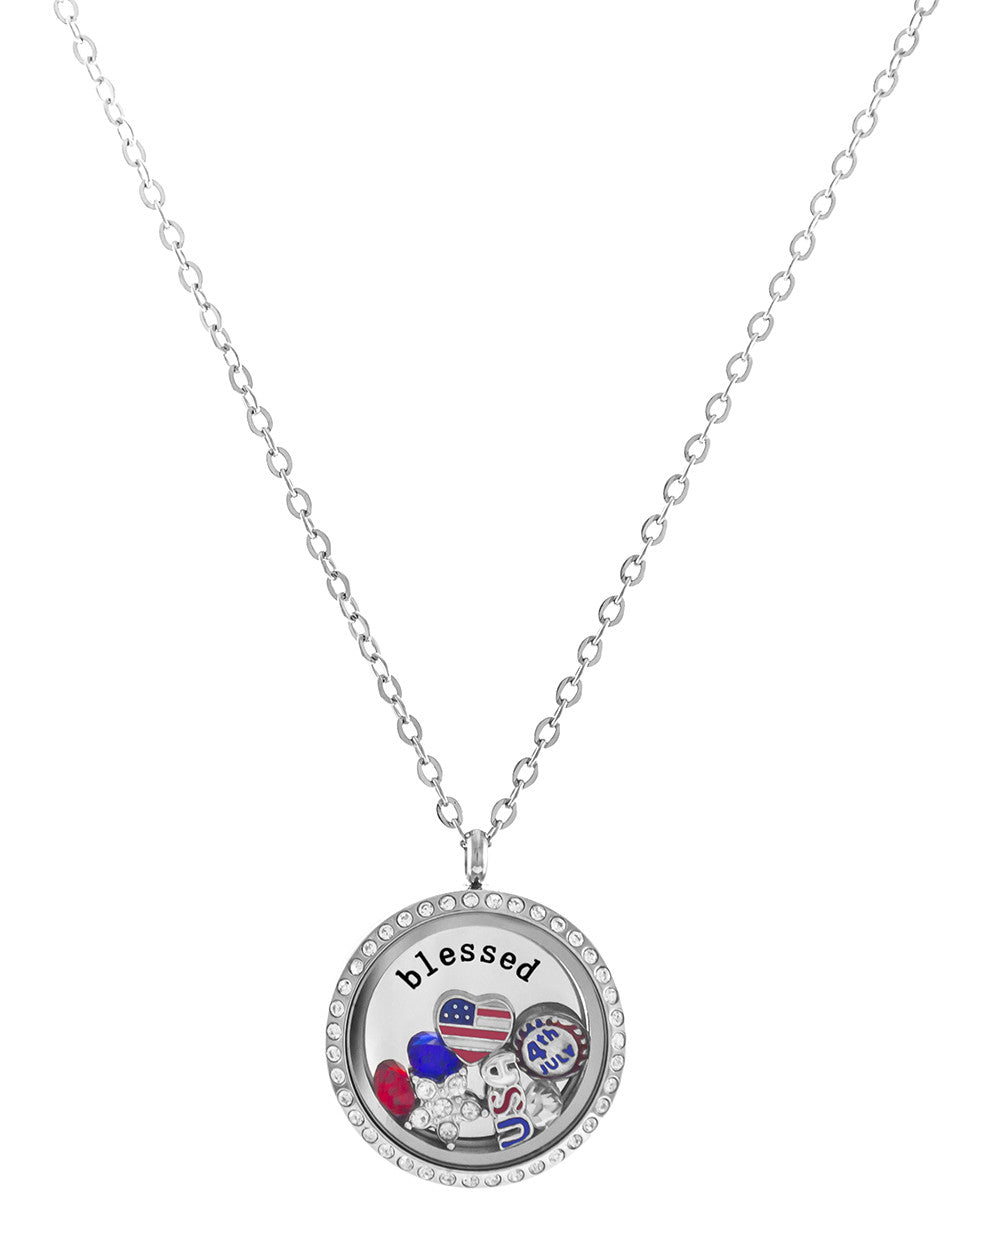 Stainless Steel Floating Charm Locket 4th of July Celebration Necklace by BG247®